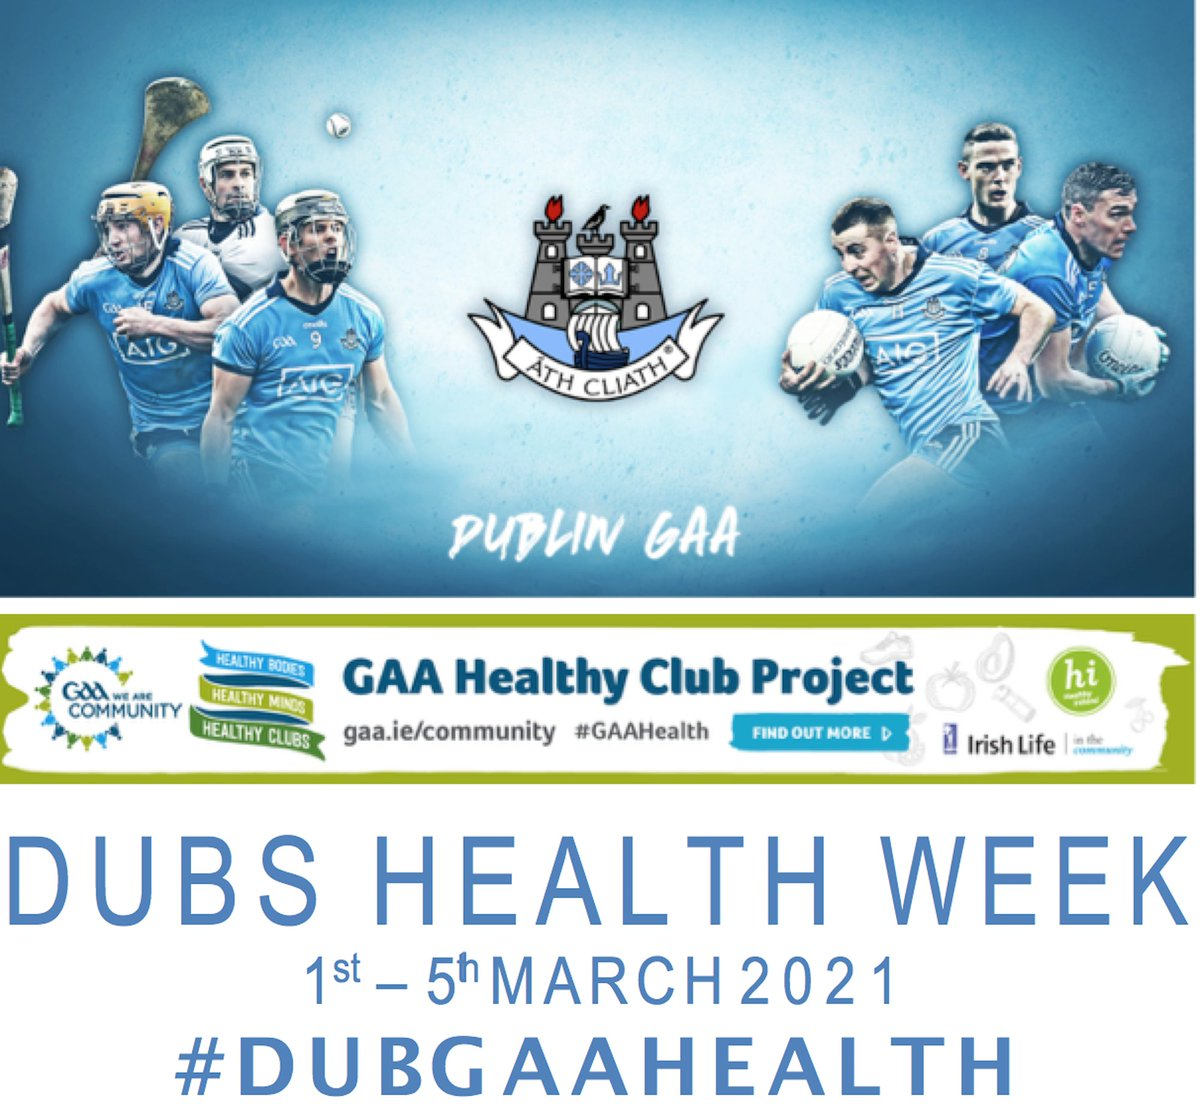 test Twitter Media - Dub Health Week gets underway tomorrow, with online talks across the week. These talks are OPEN TO ALL, members and non-members of the GAA!   Sign up details here ➡️ https://t.co/ujK7DHaeiQ  #DubGAAHealth https://t.co/5pM2LkGgpl